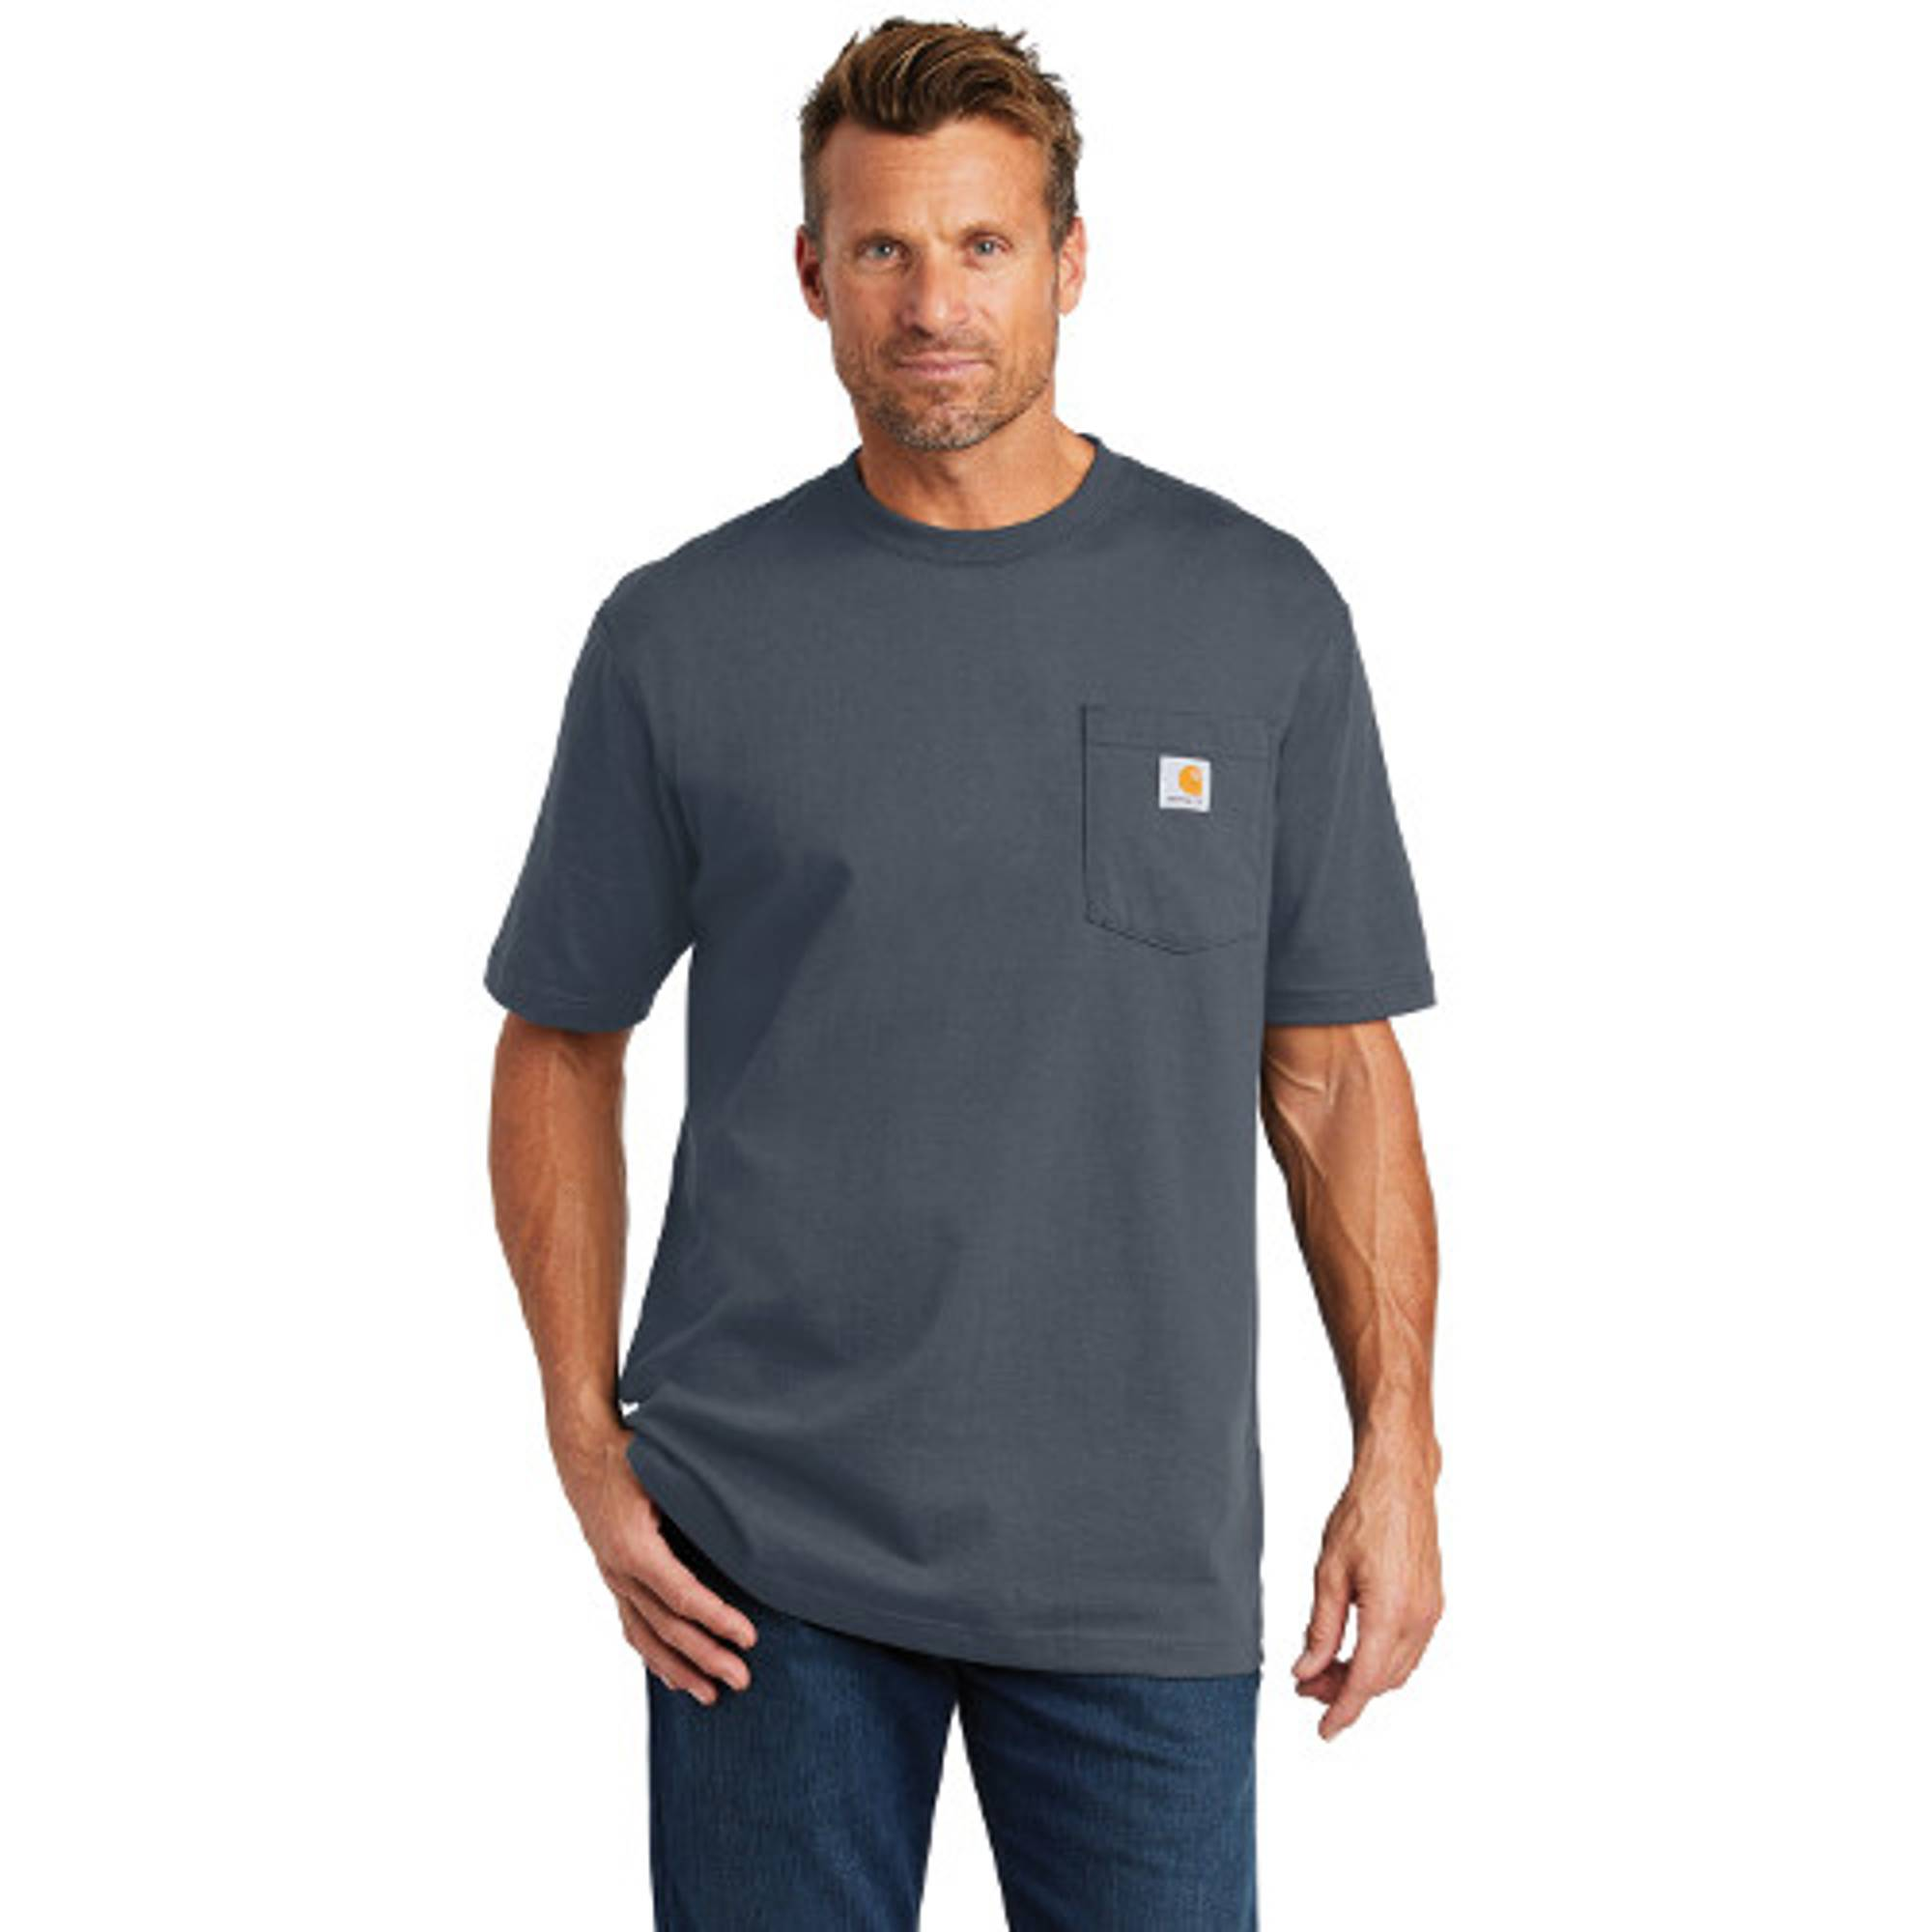 Carhartt® Workwear Pocket Short Sleeve T-Shirt